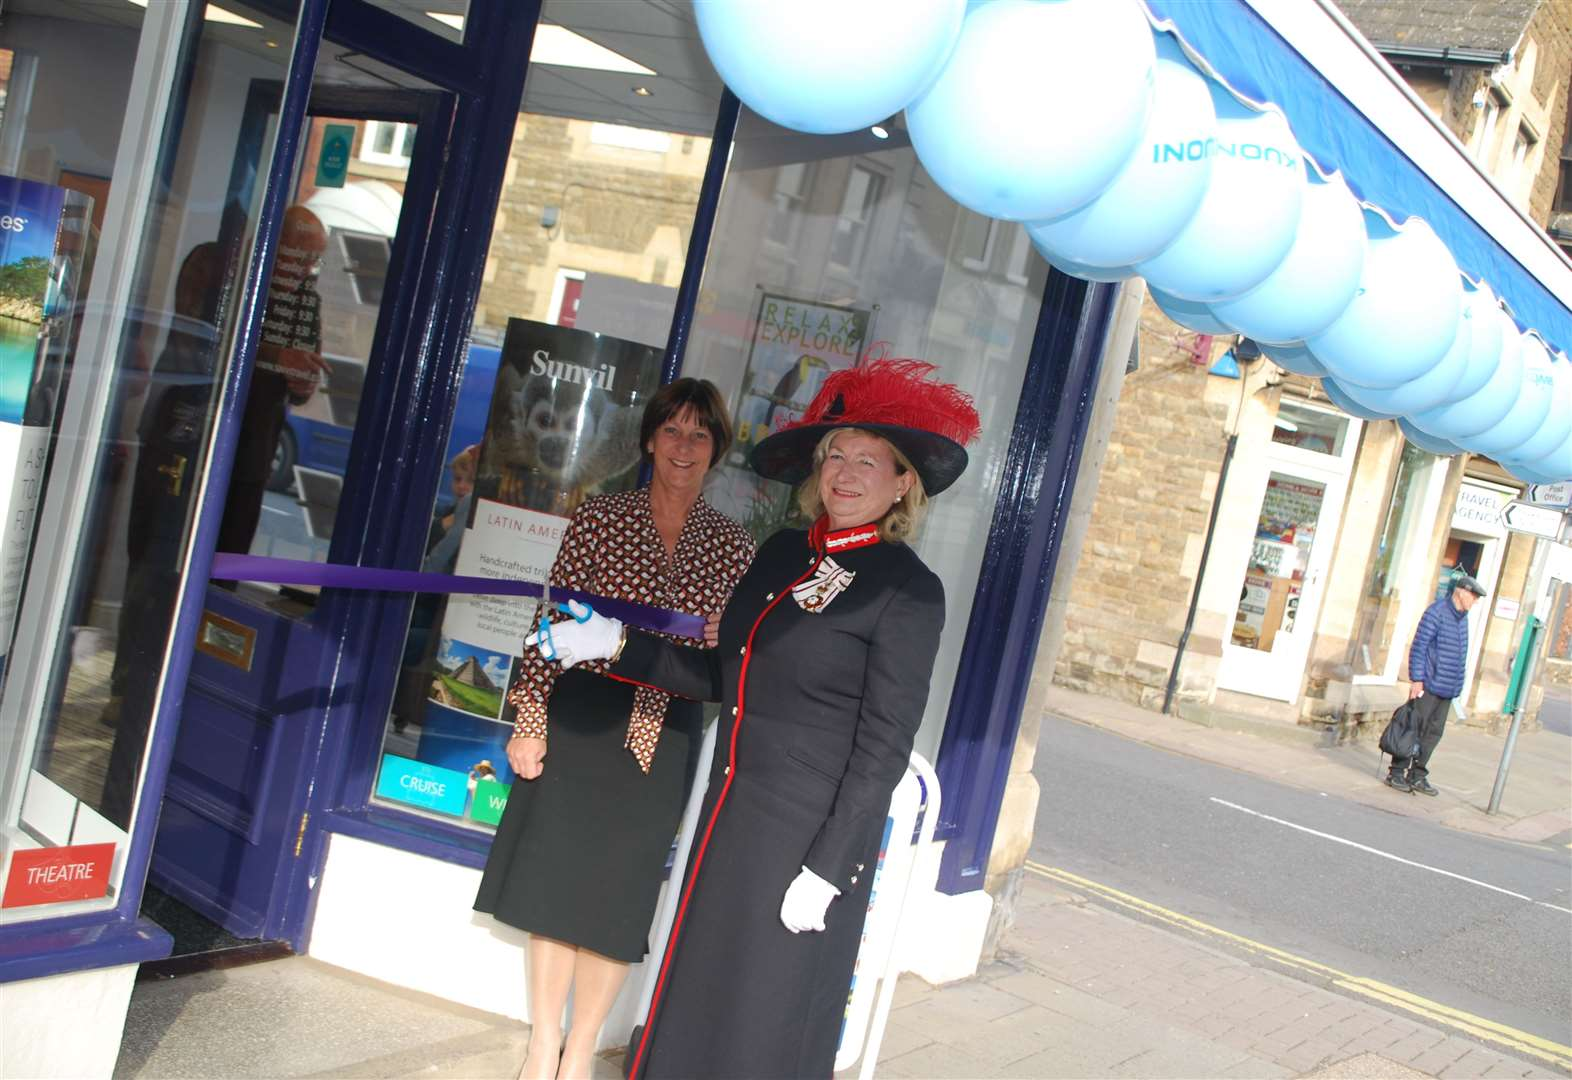 Travel agent reopens in high street